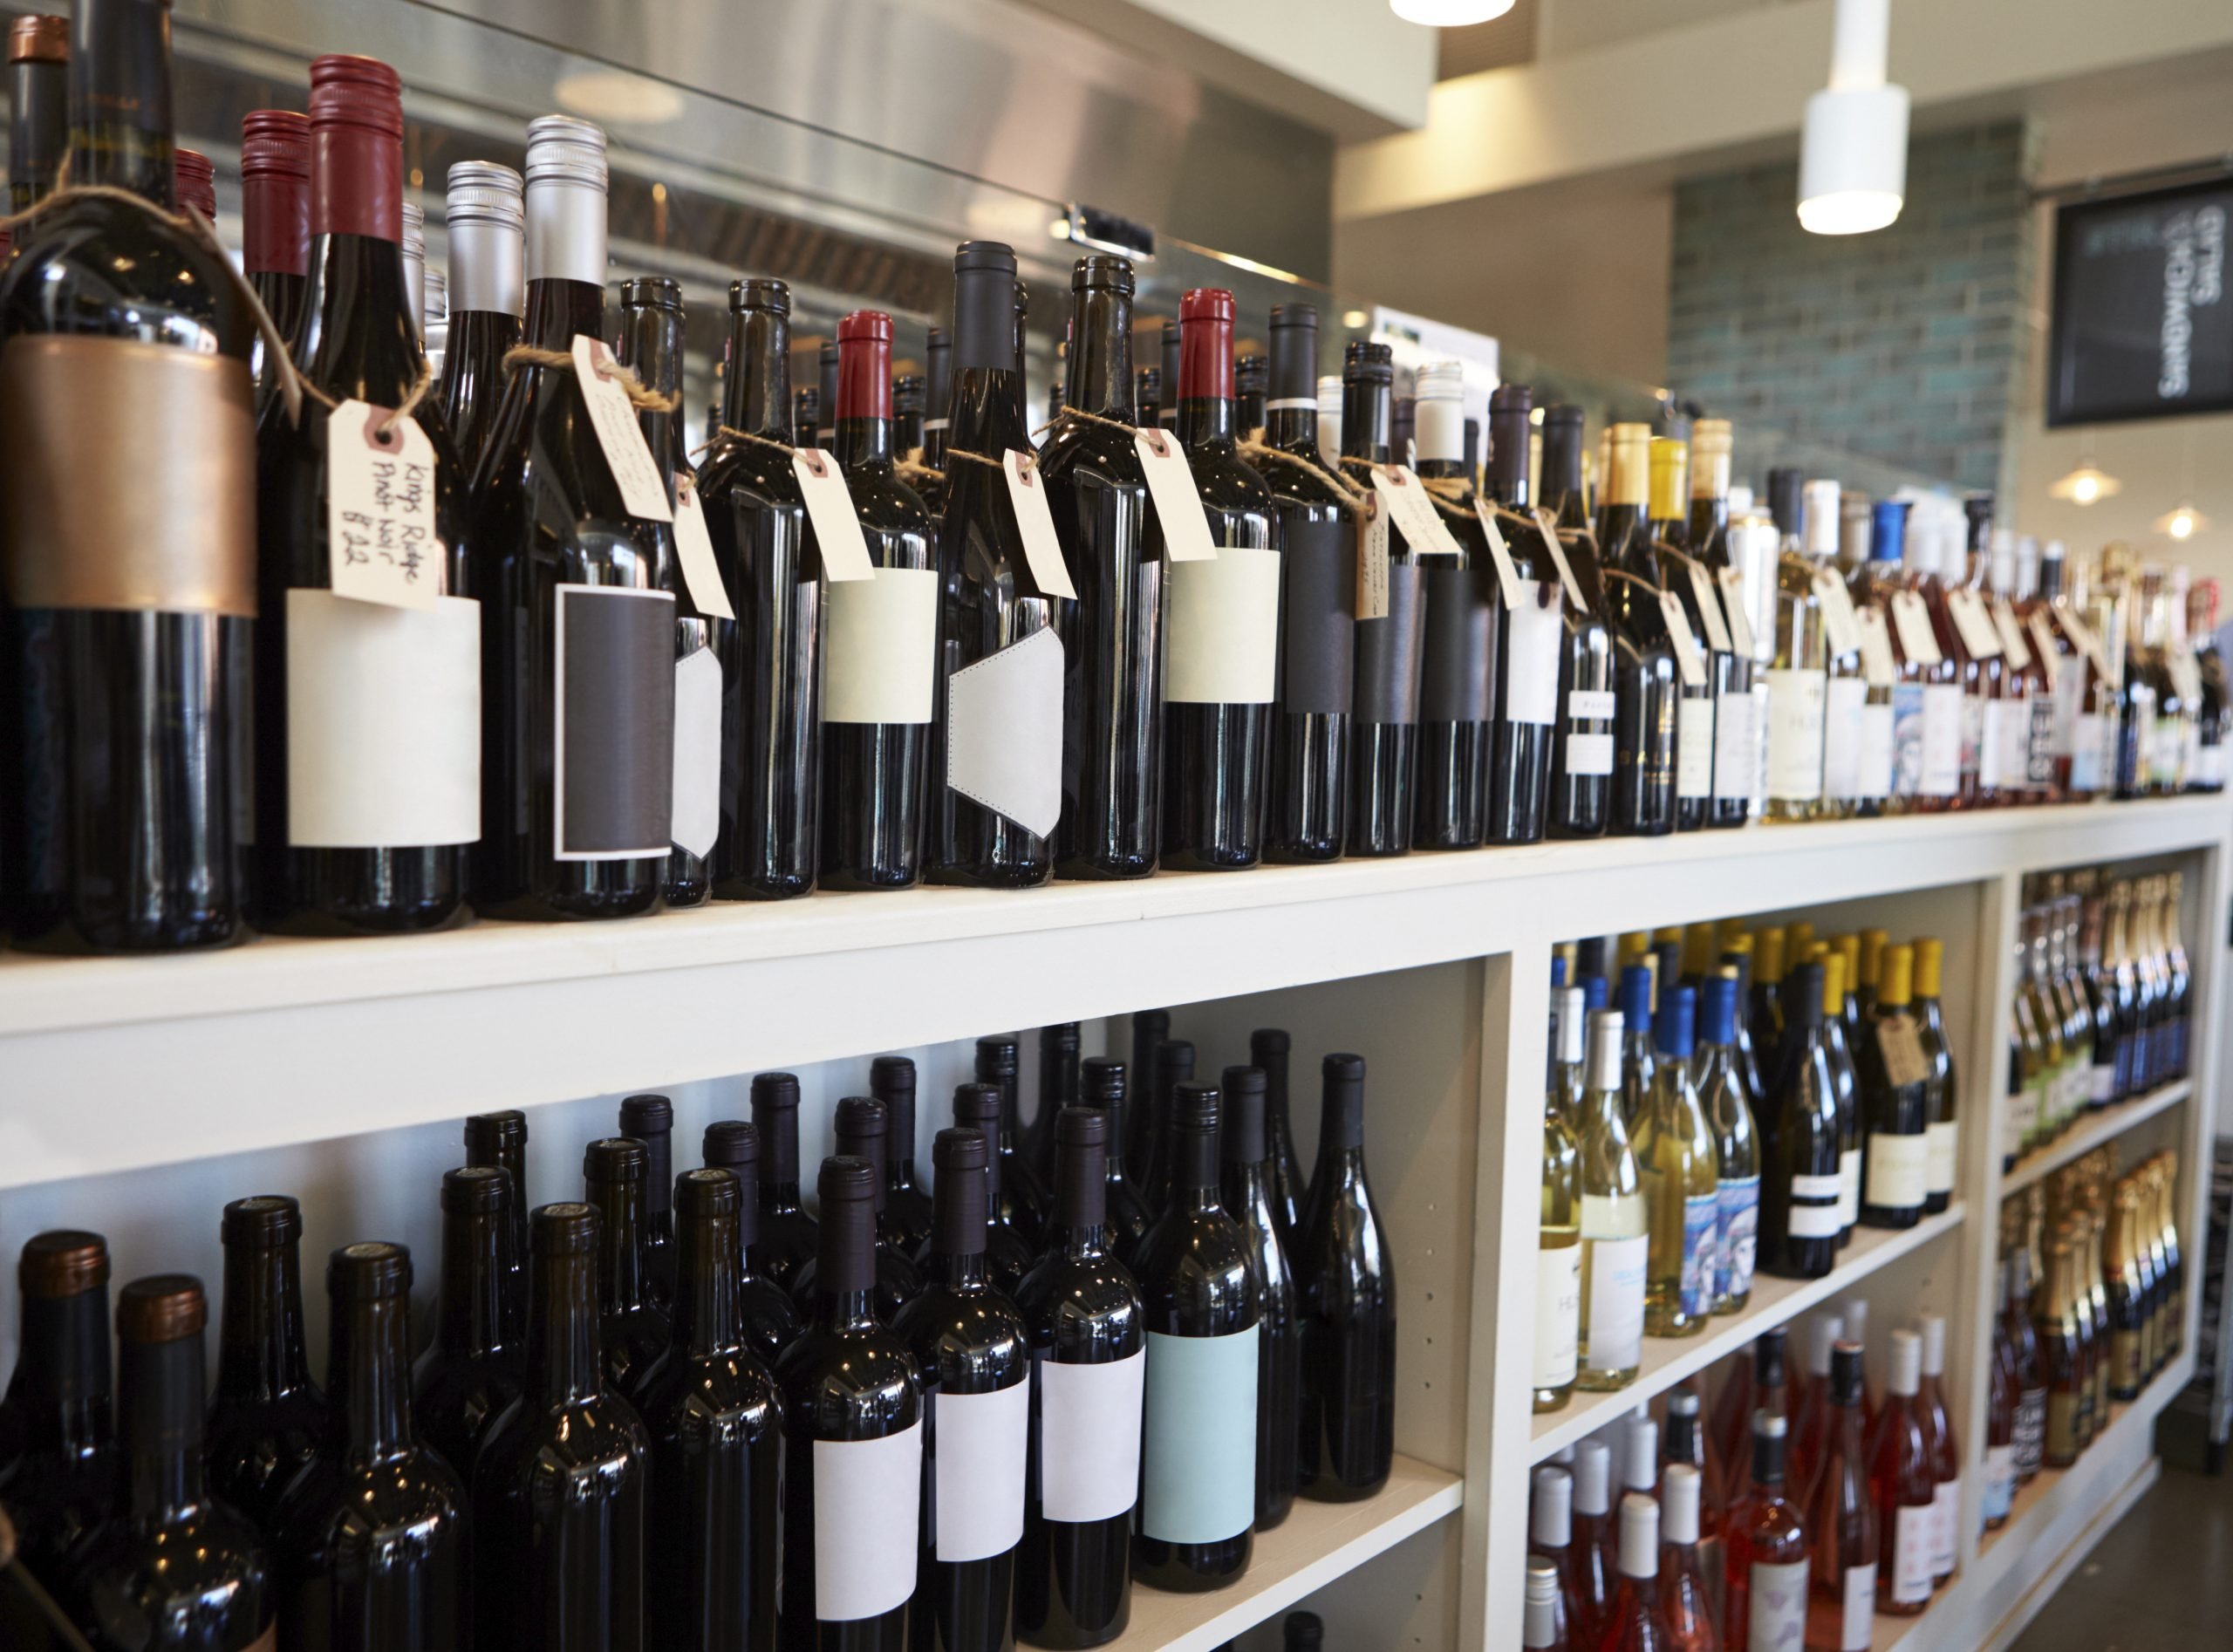 Display of a liquor store's wine section